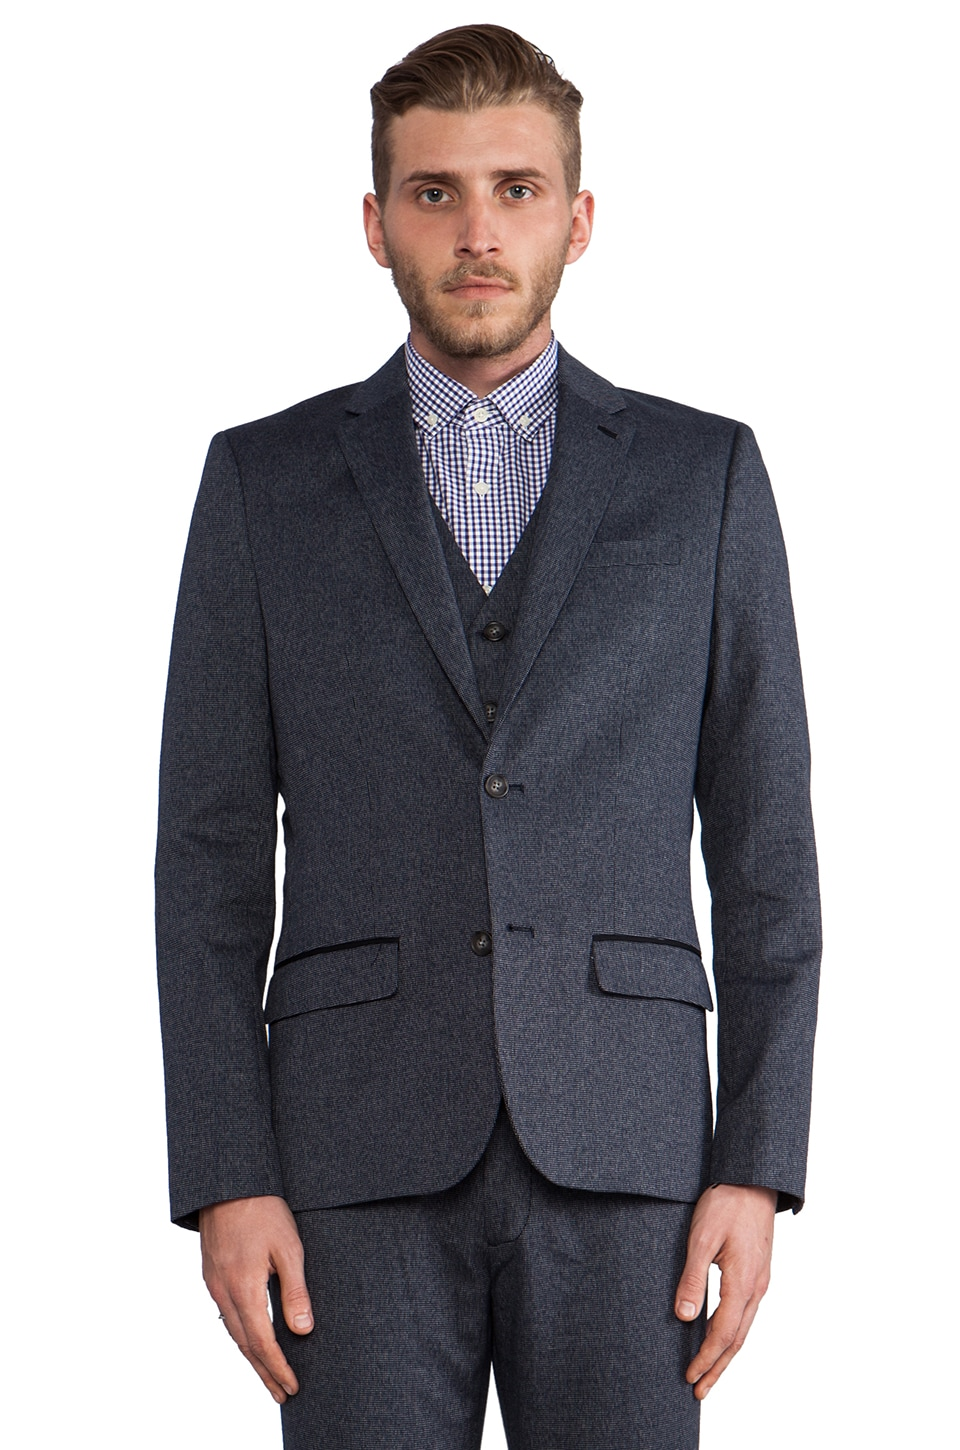 Penguin Suit Jacket in Dark Sapphire